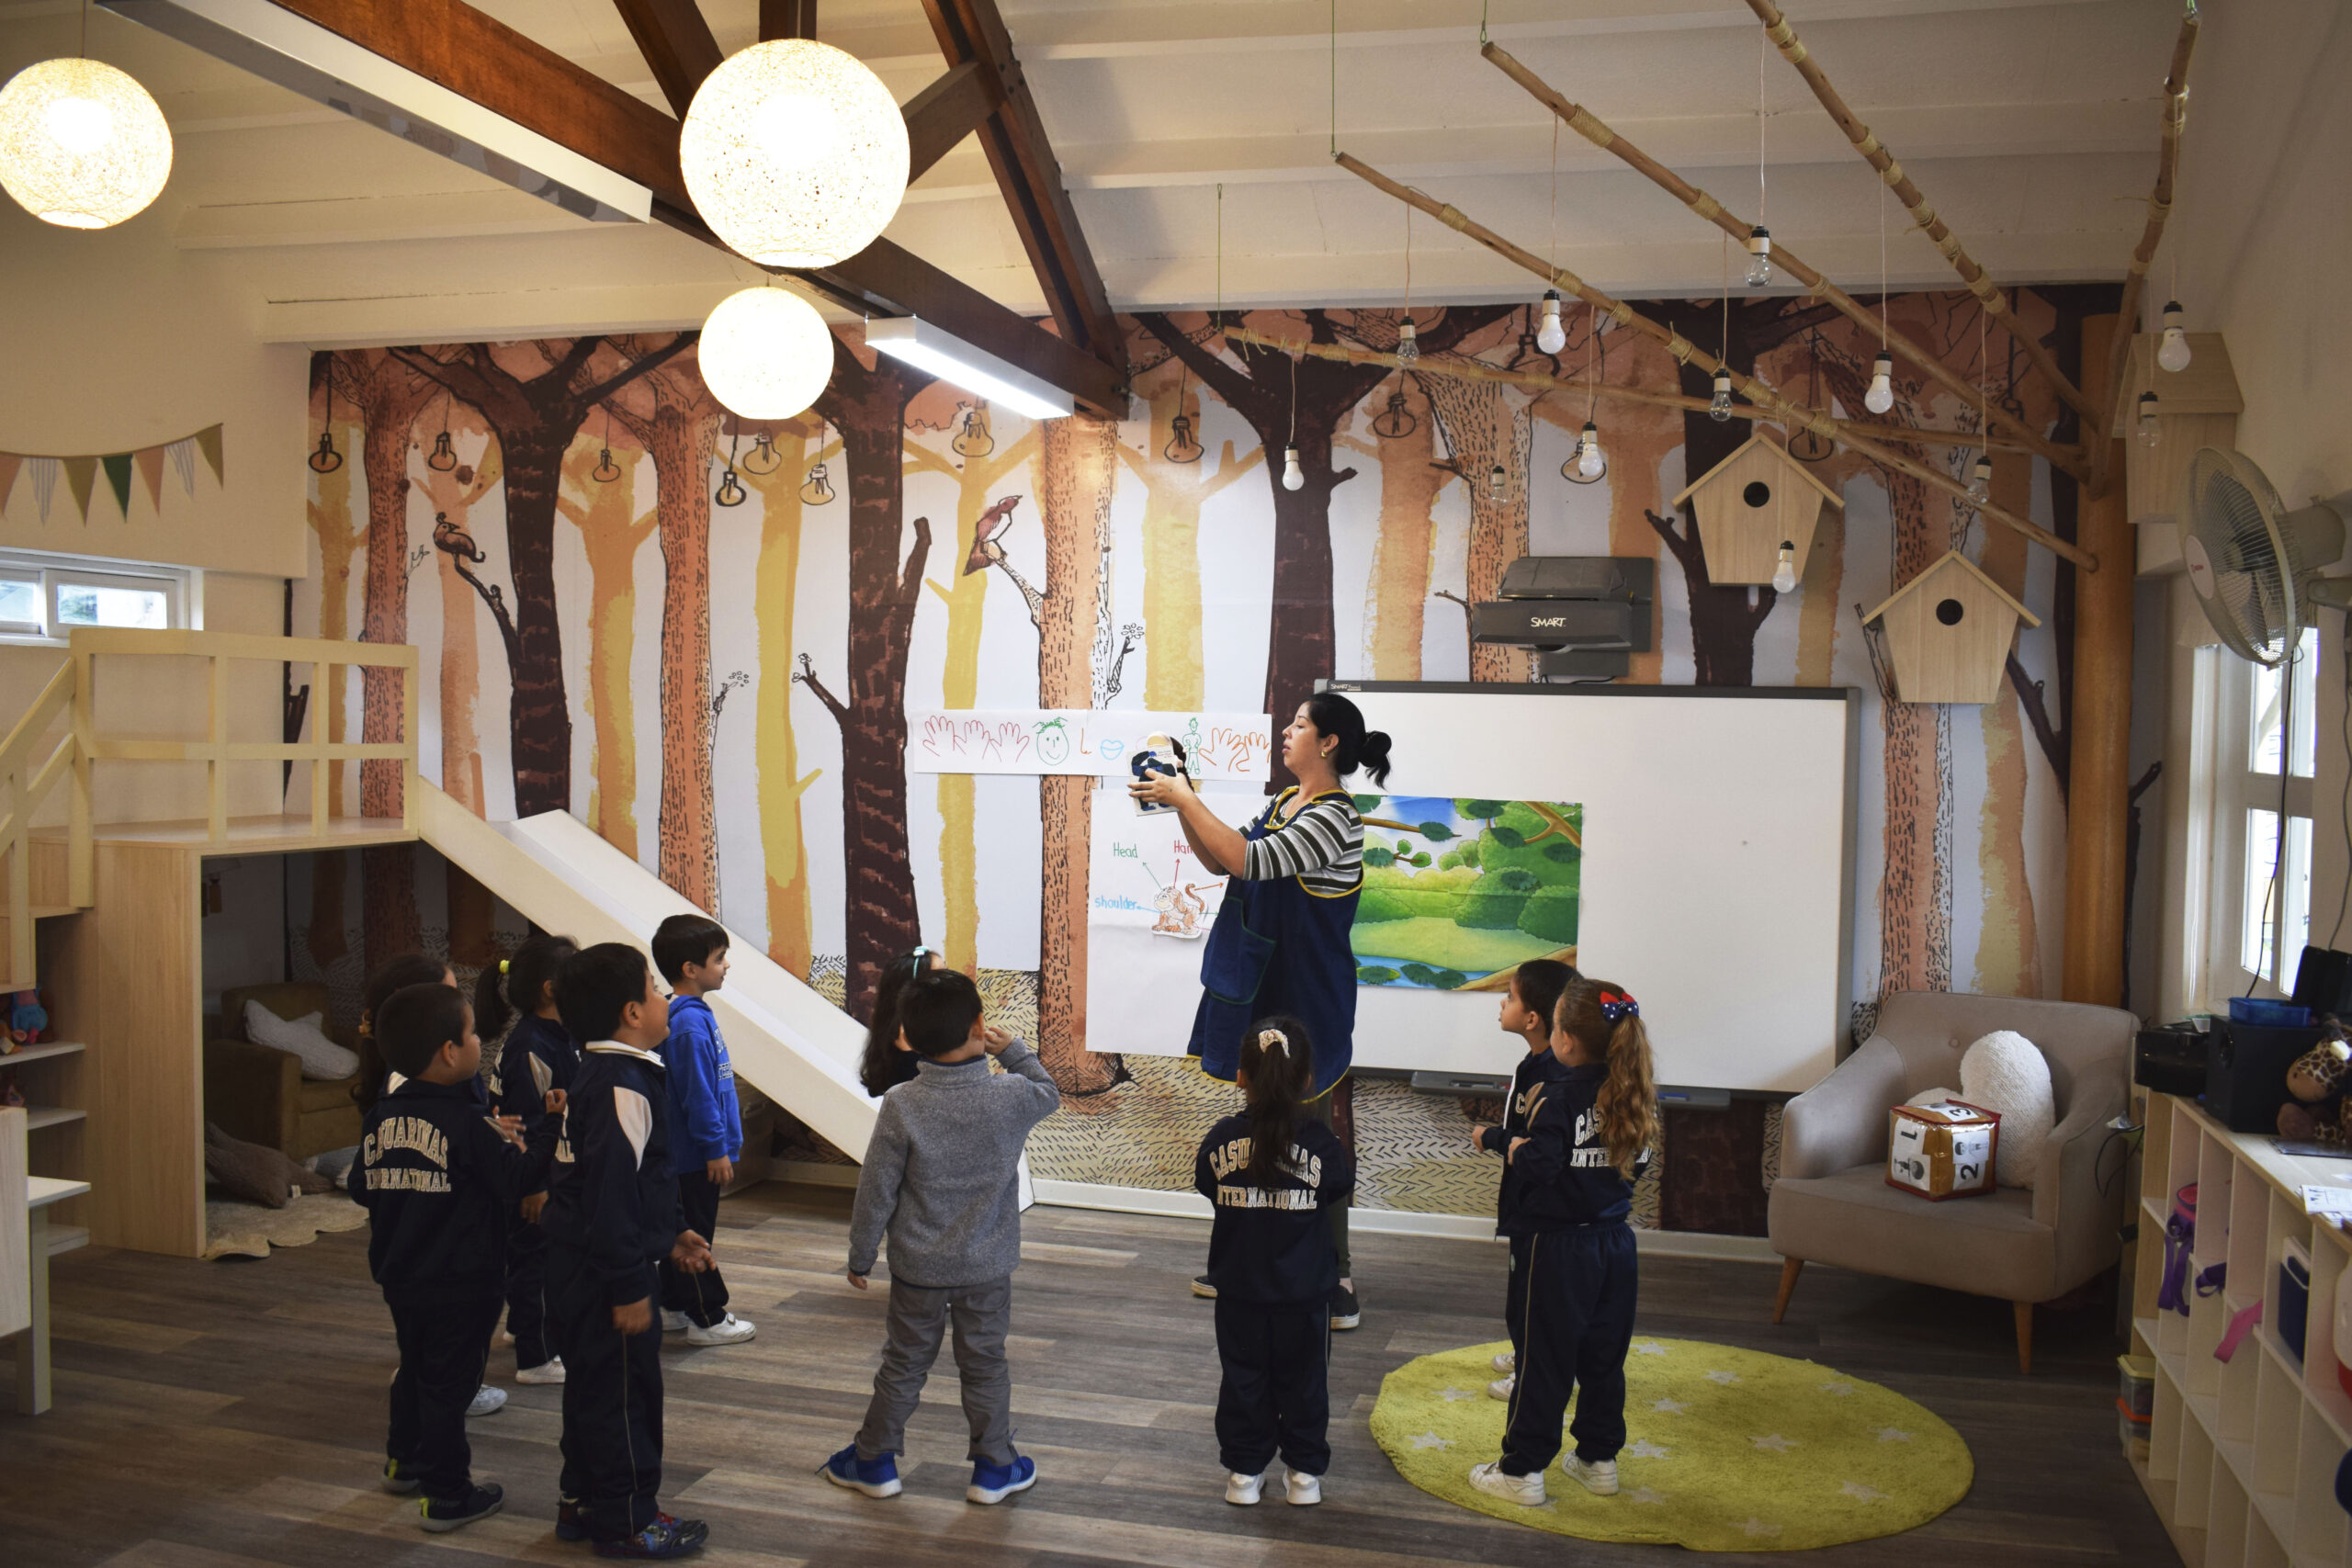 FinlandWay Finnish kindergarten can be adapted to other countries